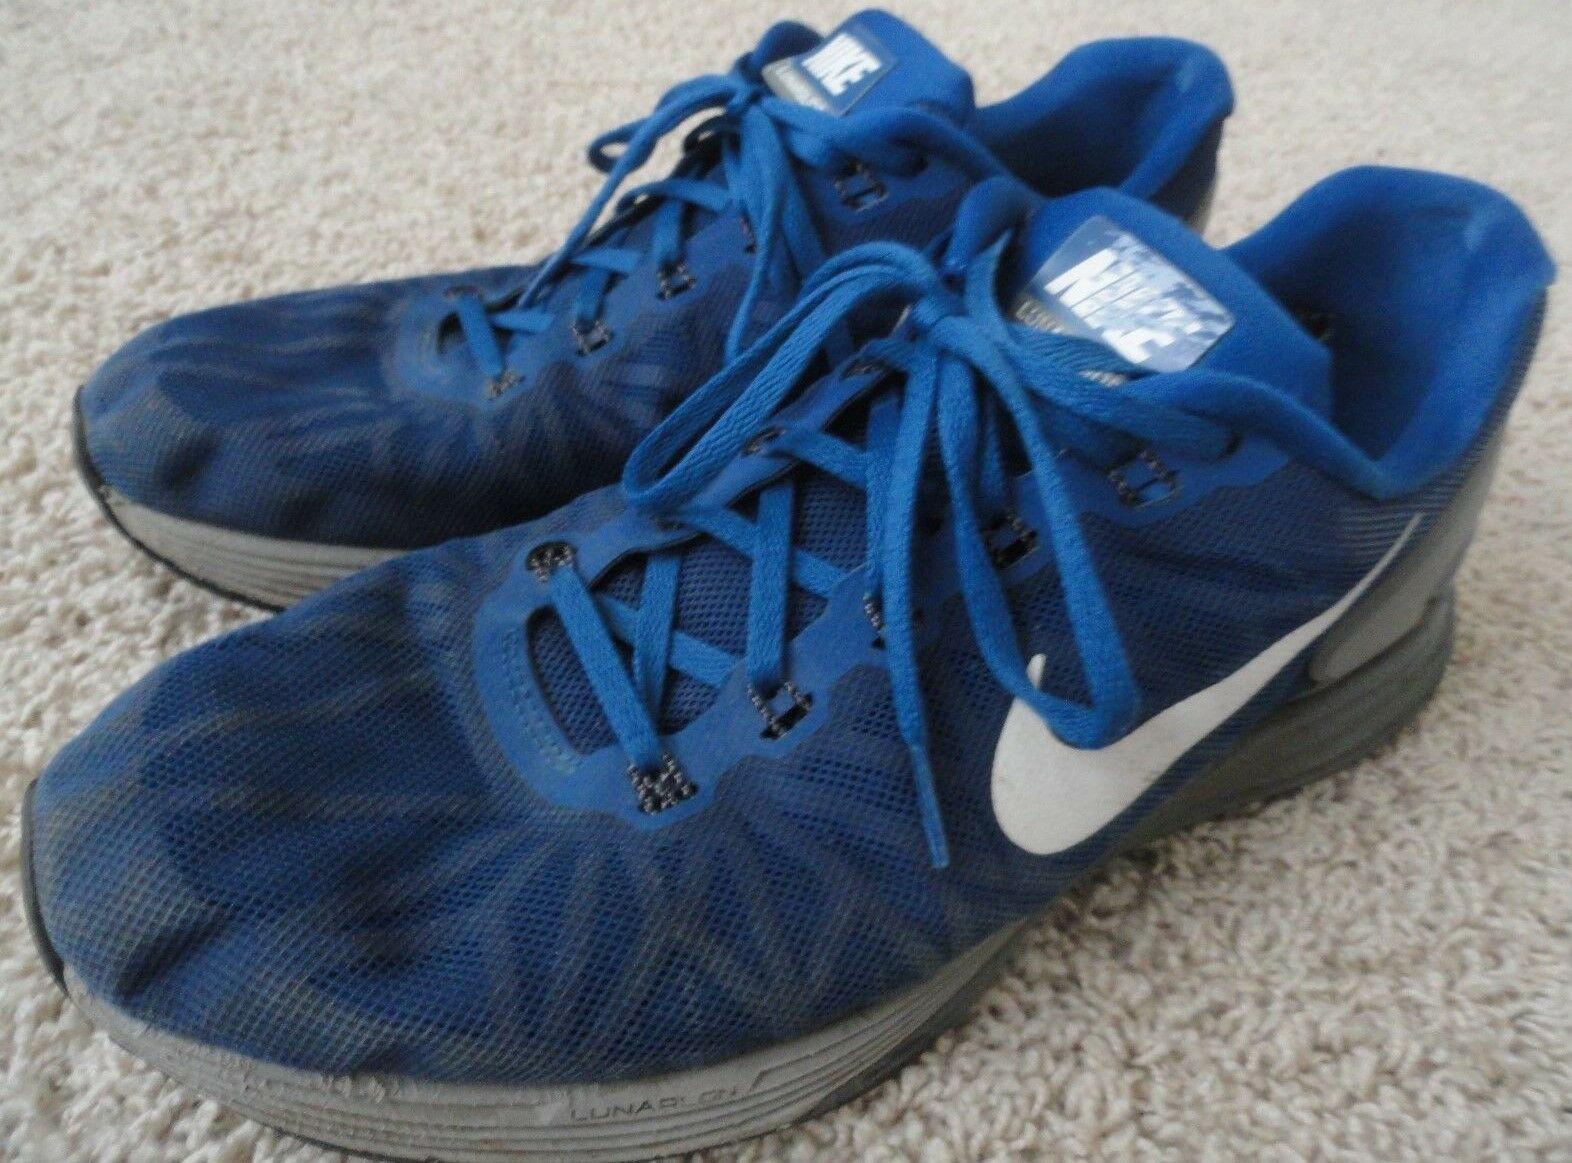 PRE 6 OWNED Blue NIKE Lunarglide 6 PRE Running Shoes - Men's 12.5 777a67